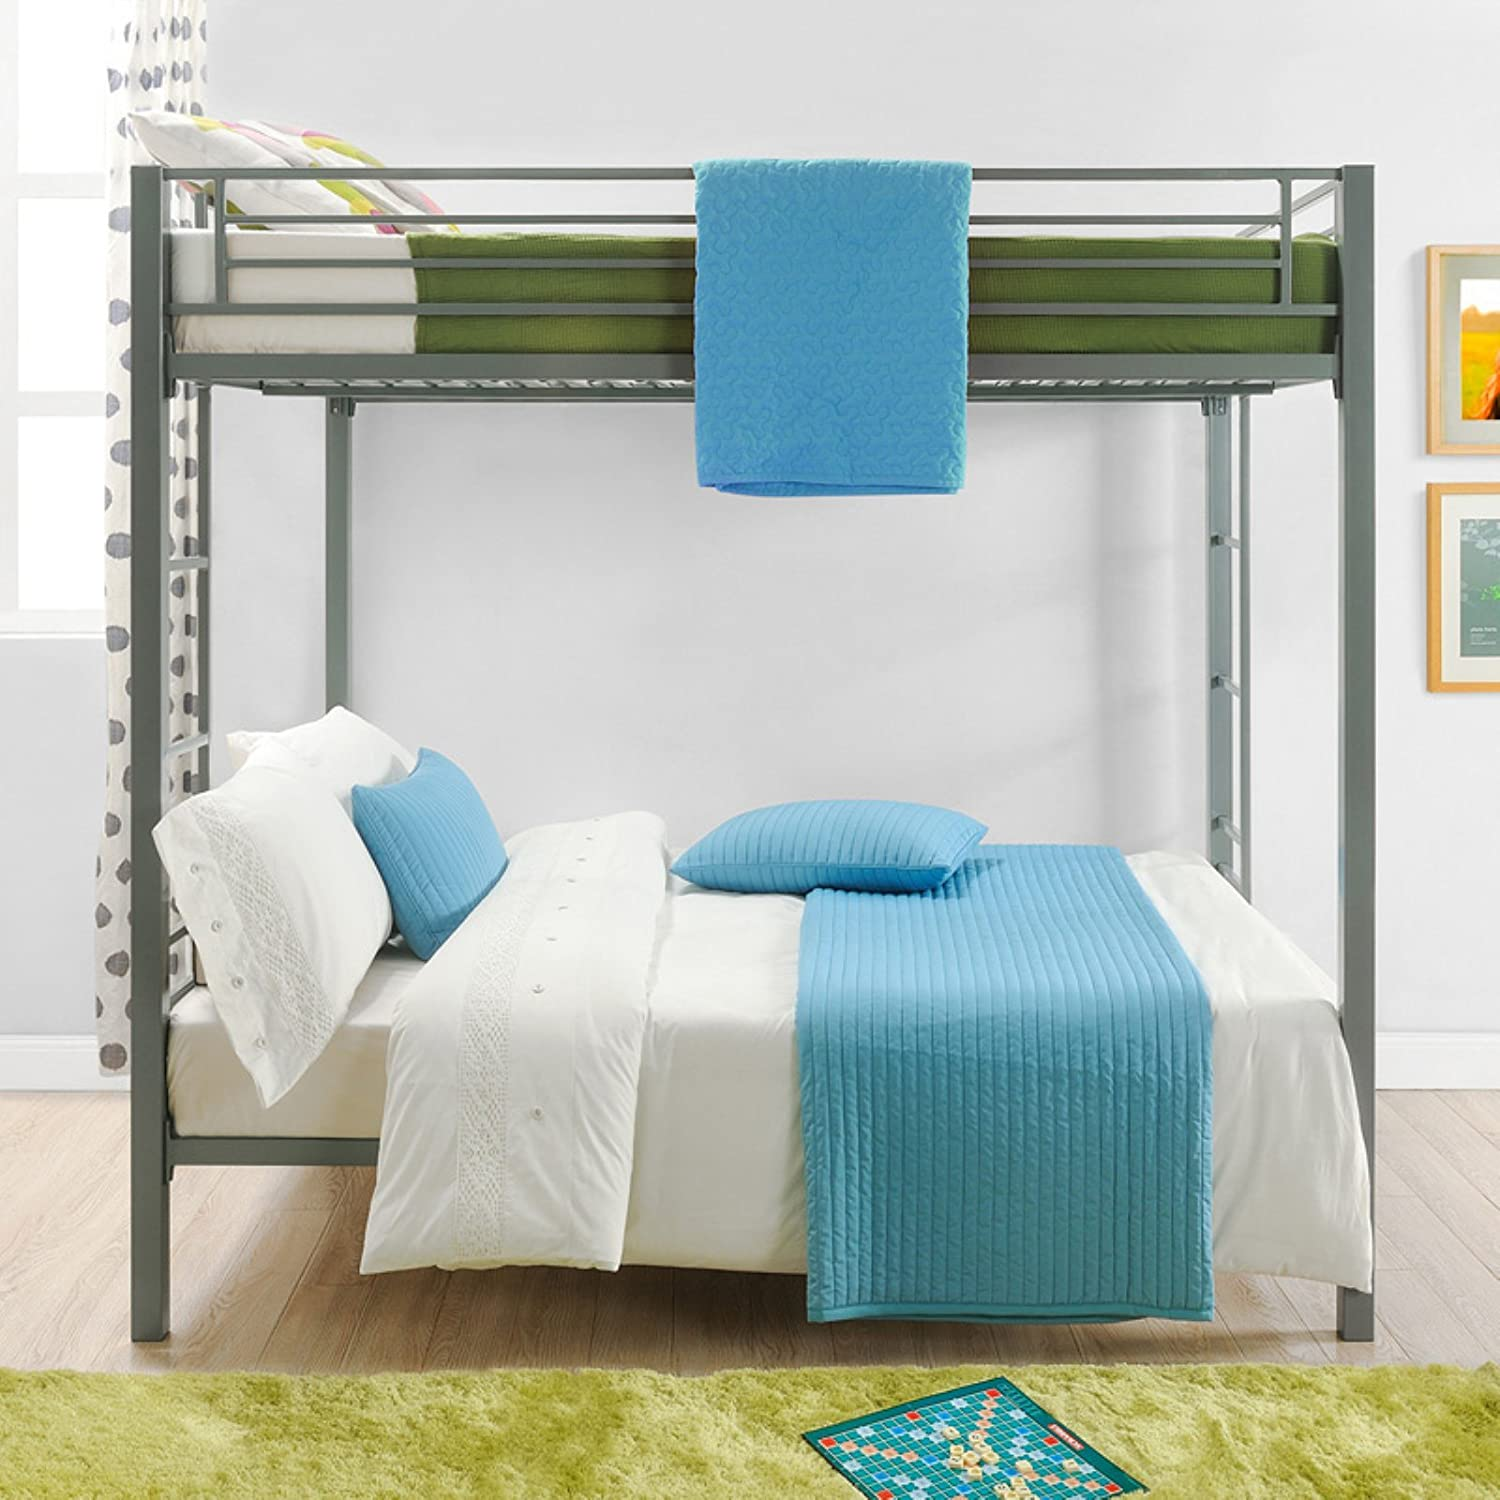 colors bedroom over full bed of paint metal interior bunk